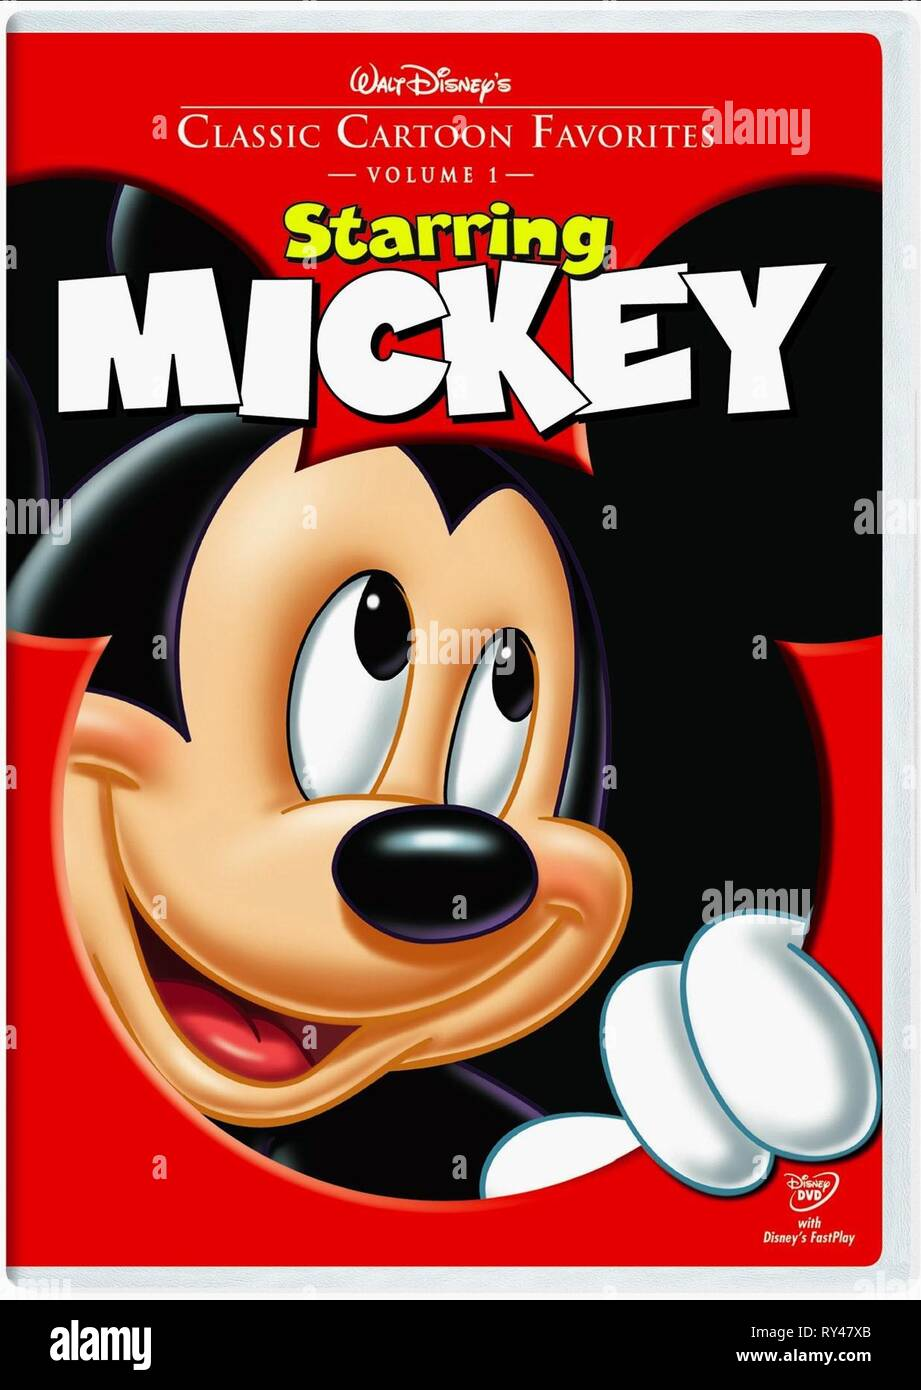 MICKEY MOUSE, CLASSIC CARTOON FAVORITES: VOLUME 1 - STARRING MICKEY, 2005 - Stock Image